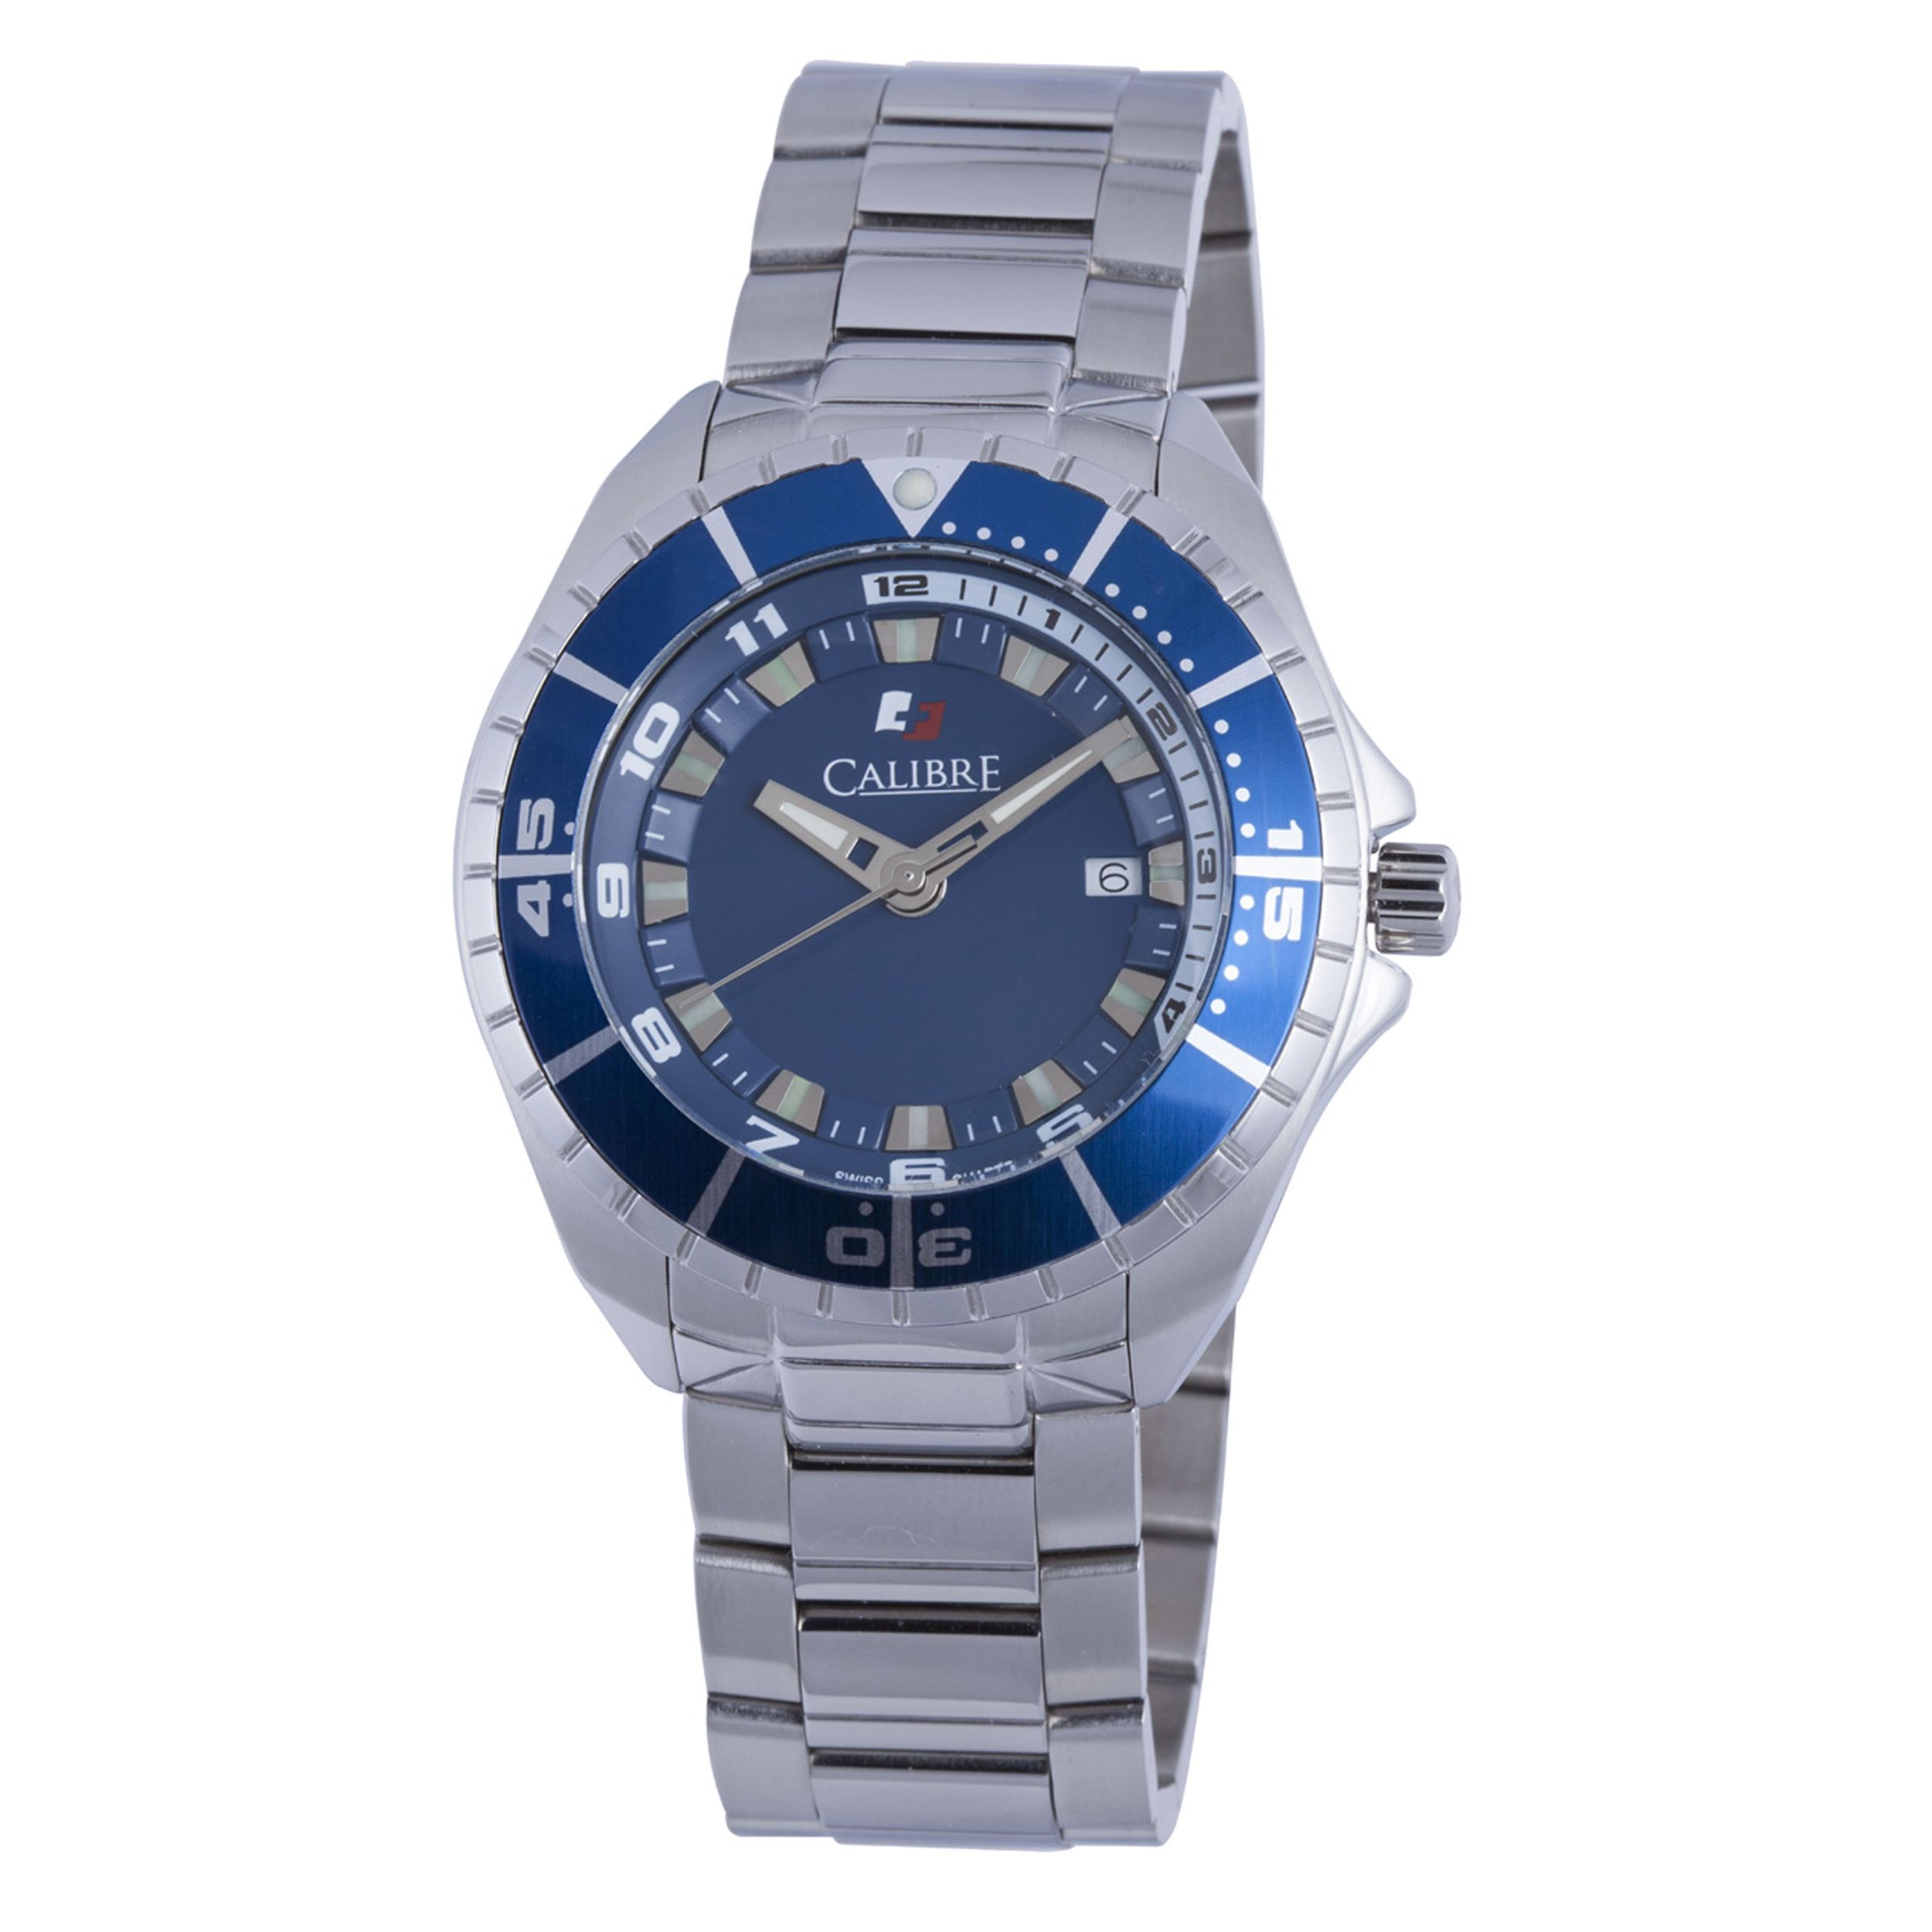 Mens Dial WatchMen'sProducts Sea Pinterest Calibre Knight nk8O0wP